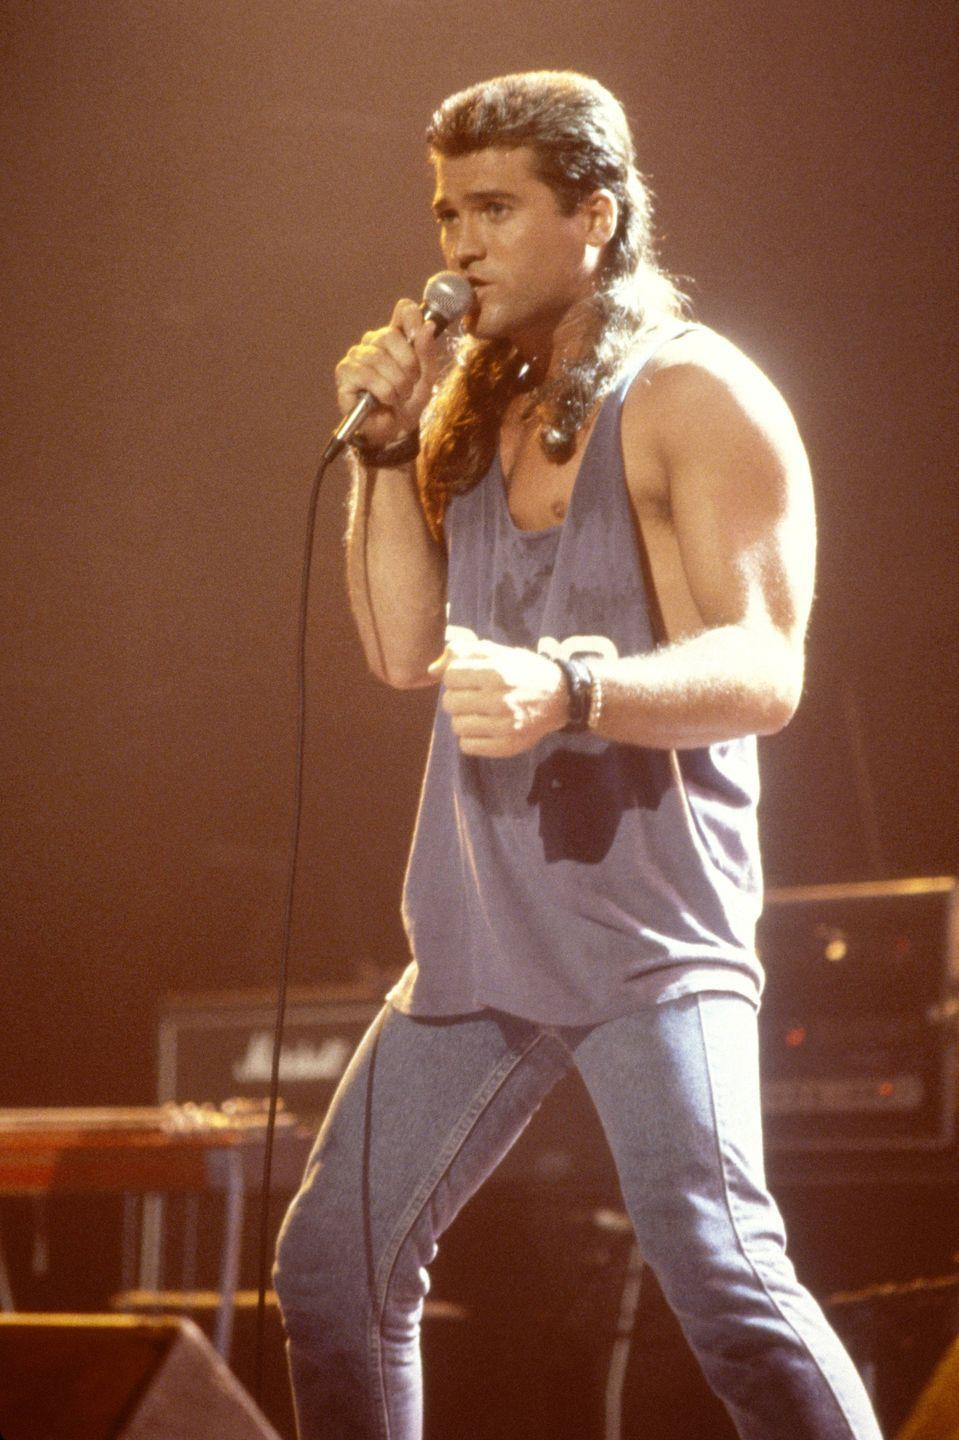 <p>Another example of why the mullet should never come back.</p>